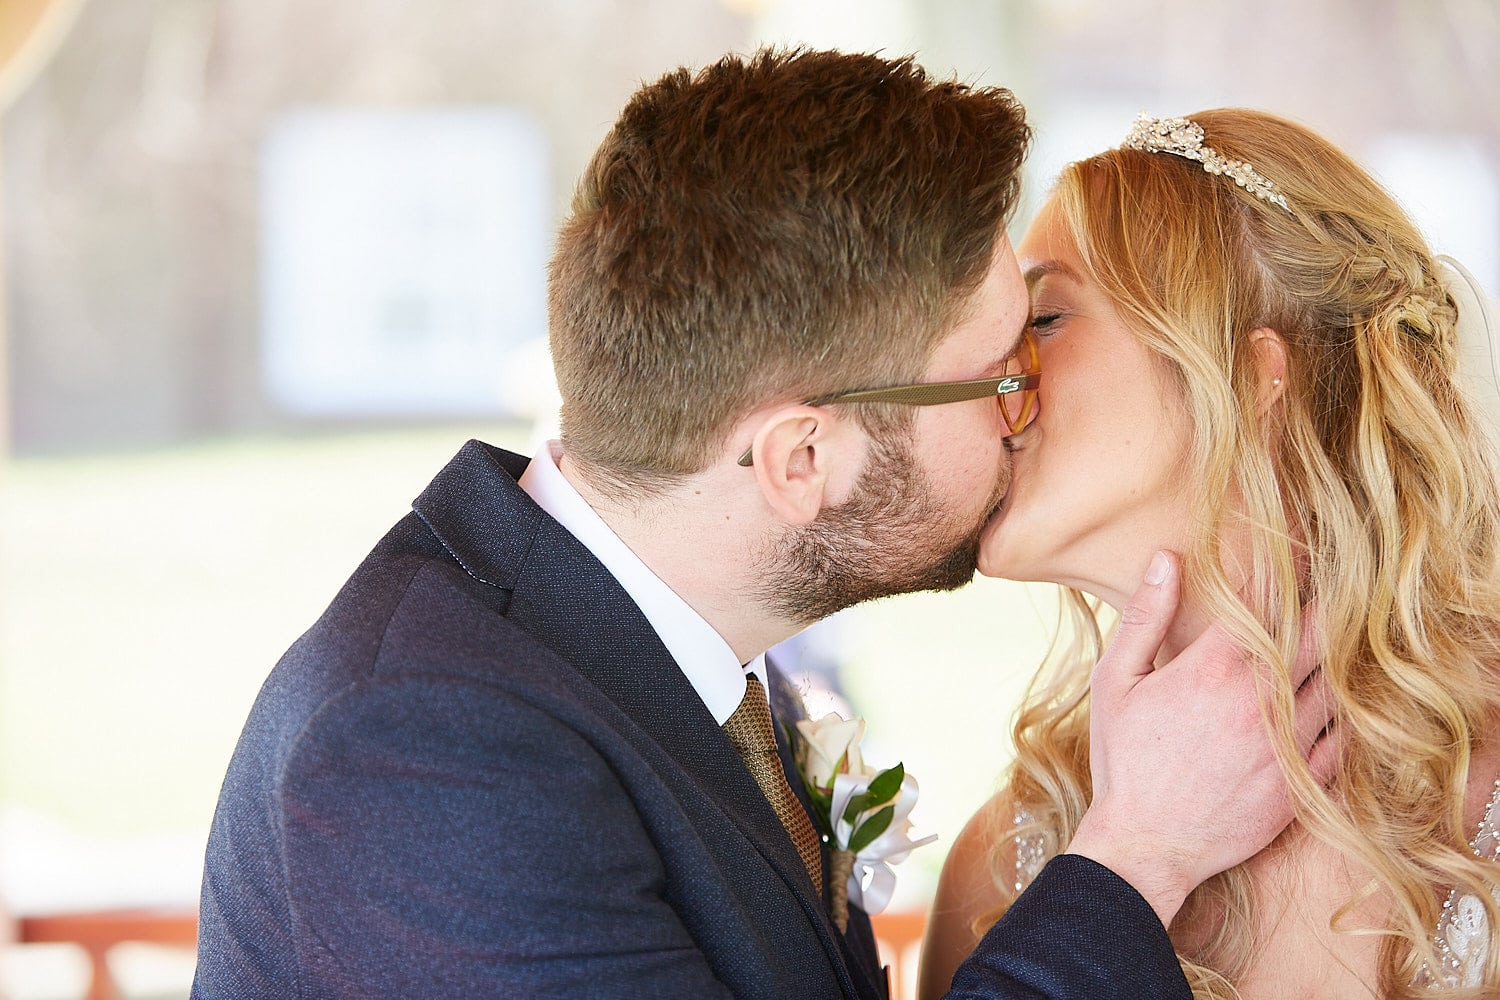 A bride and groom kiss to seal their marriage